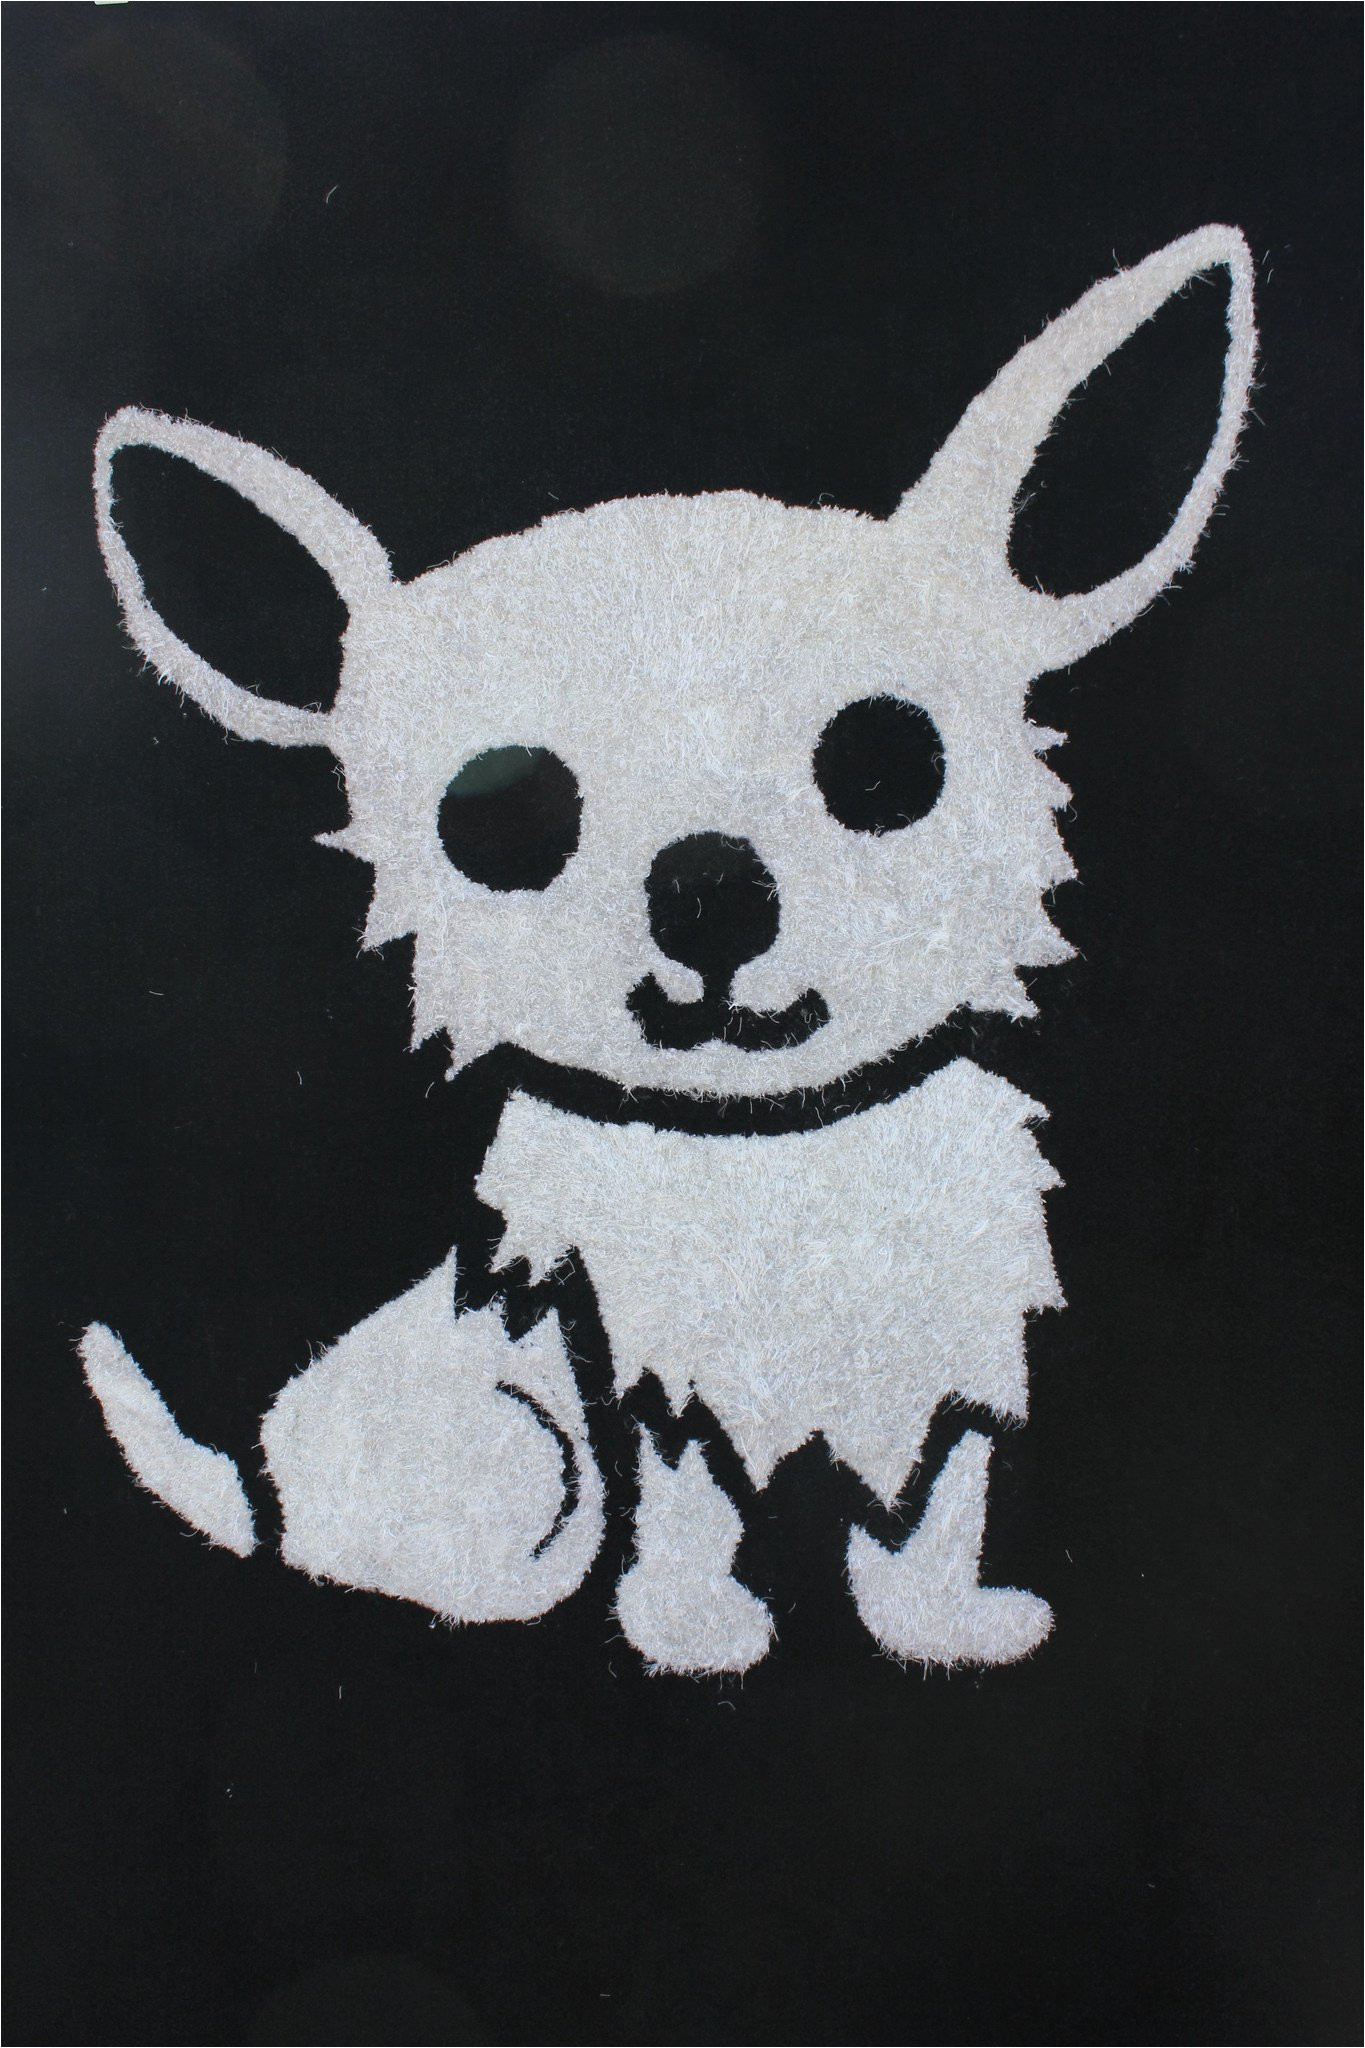 Area Rugs with Dog Designs 4 X 6 Ft All Black Kids Bedroom area Rug with White Dog